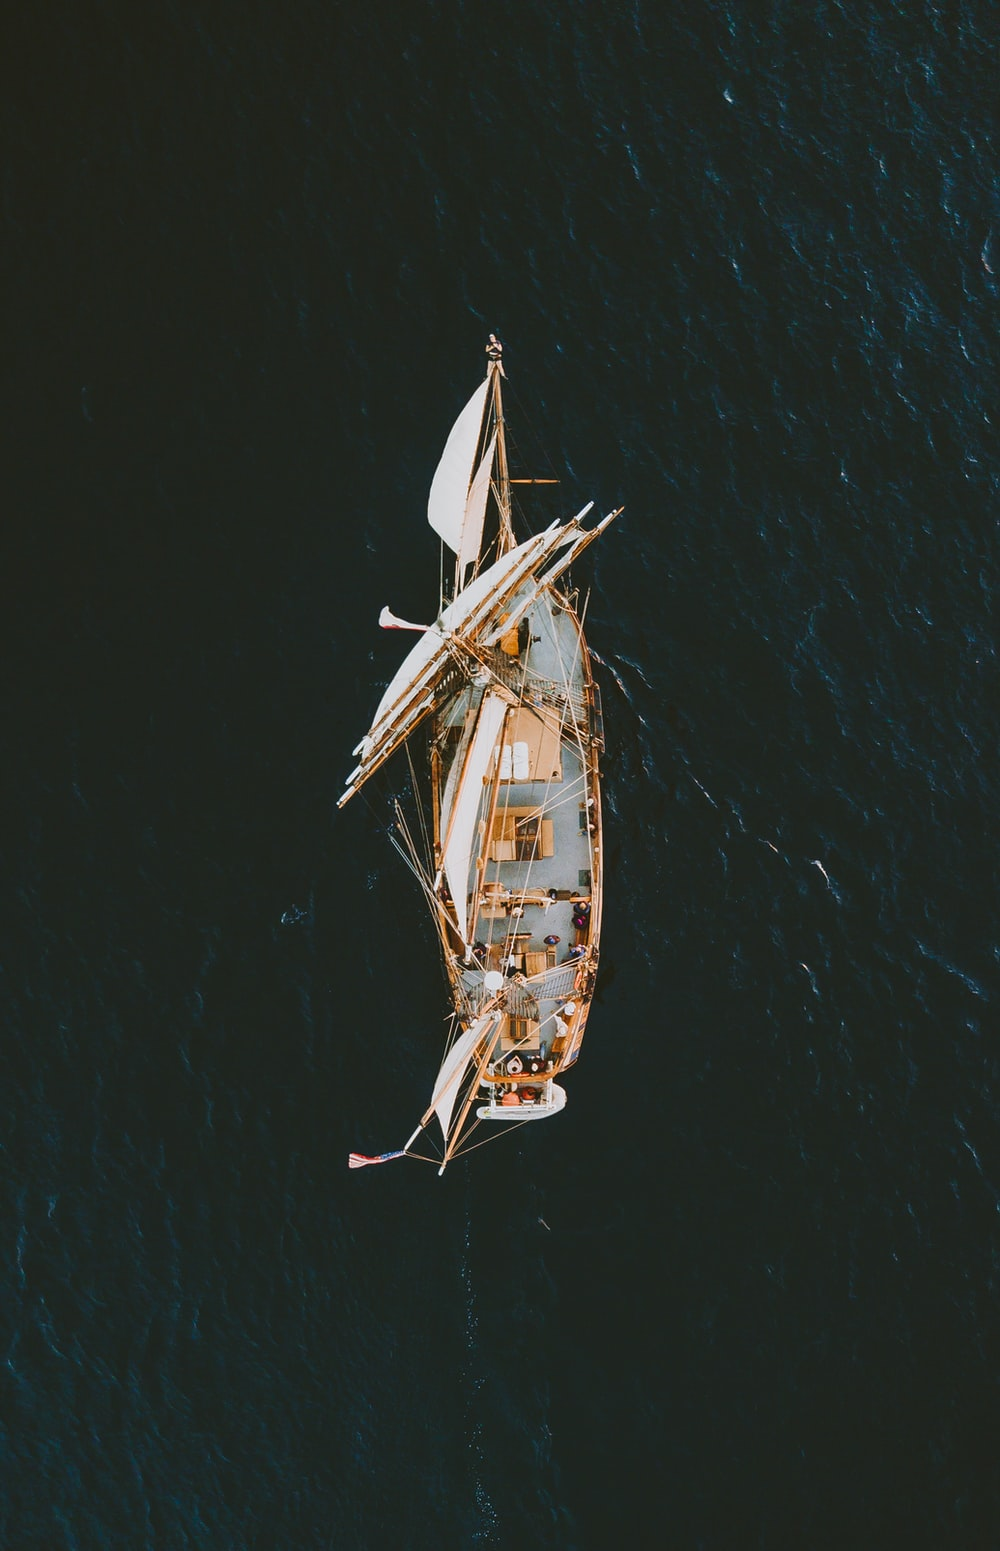 aerial photography of brown galleon ship on body of water